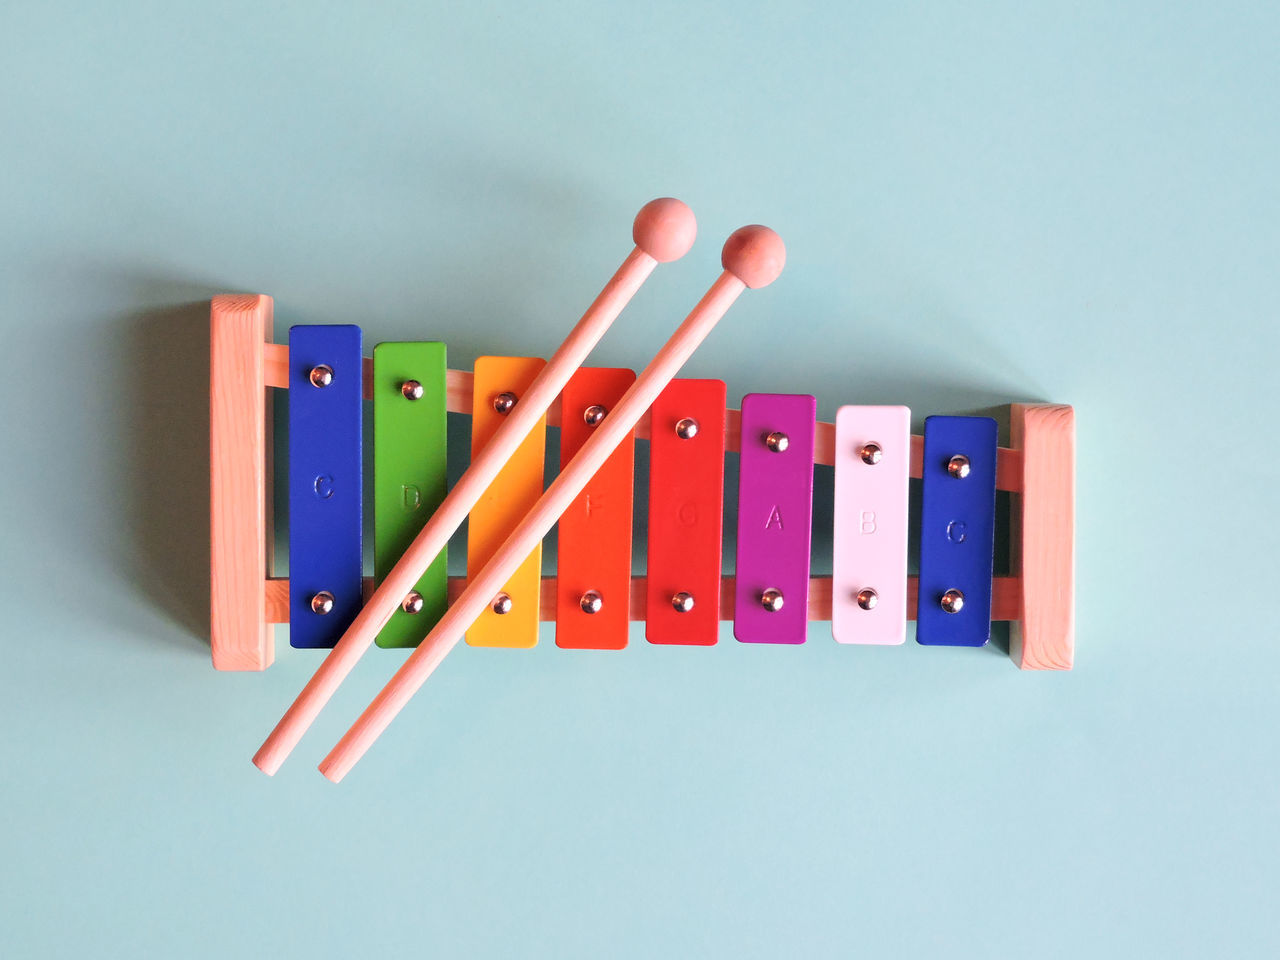 Above View Blue Background Minimal Studio Toy Xylophone